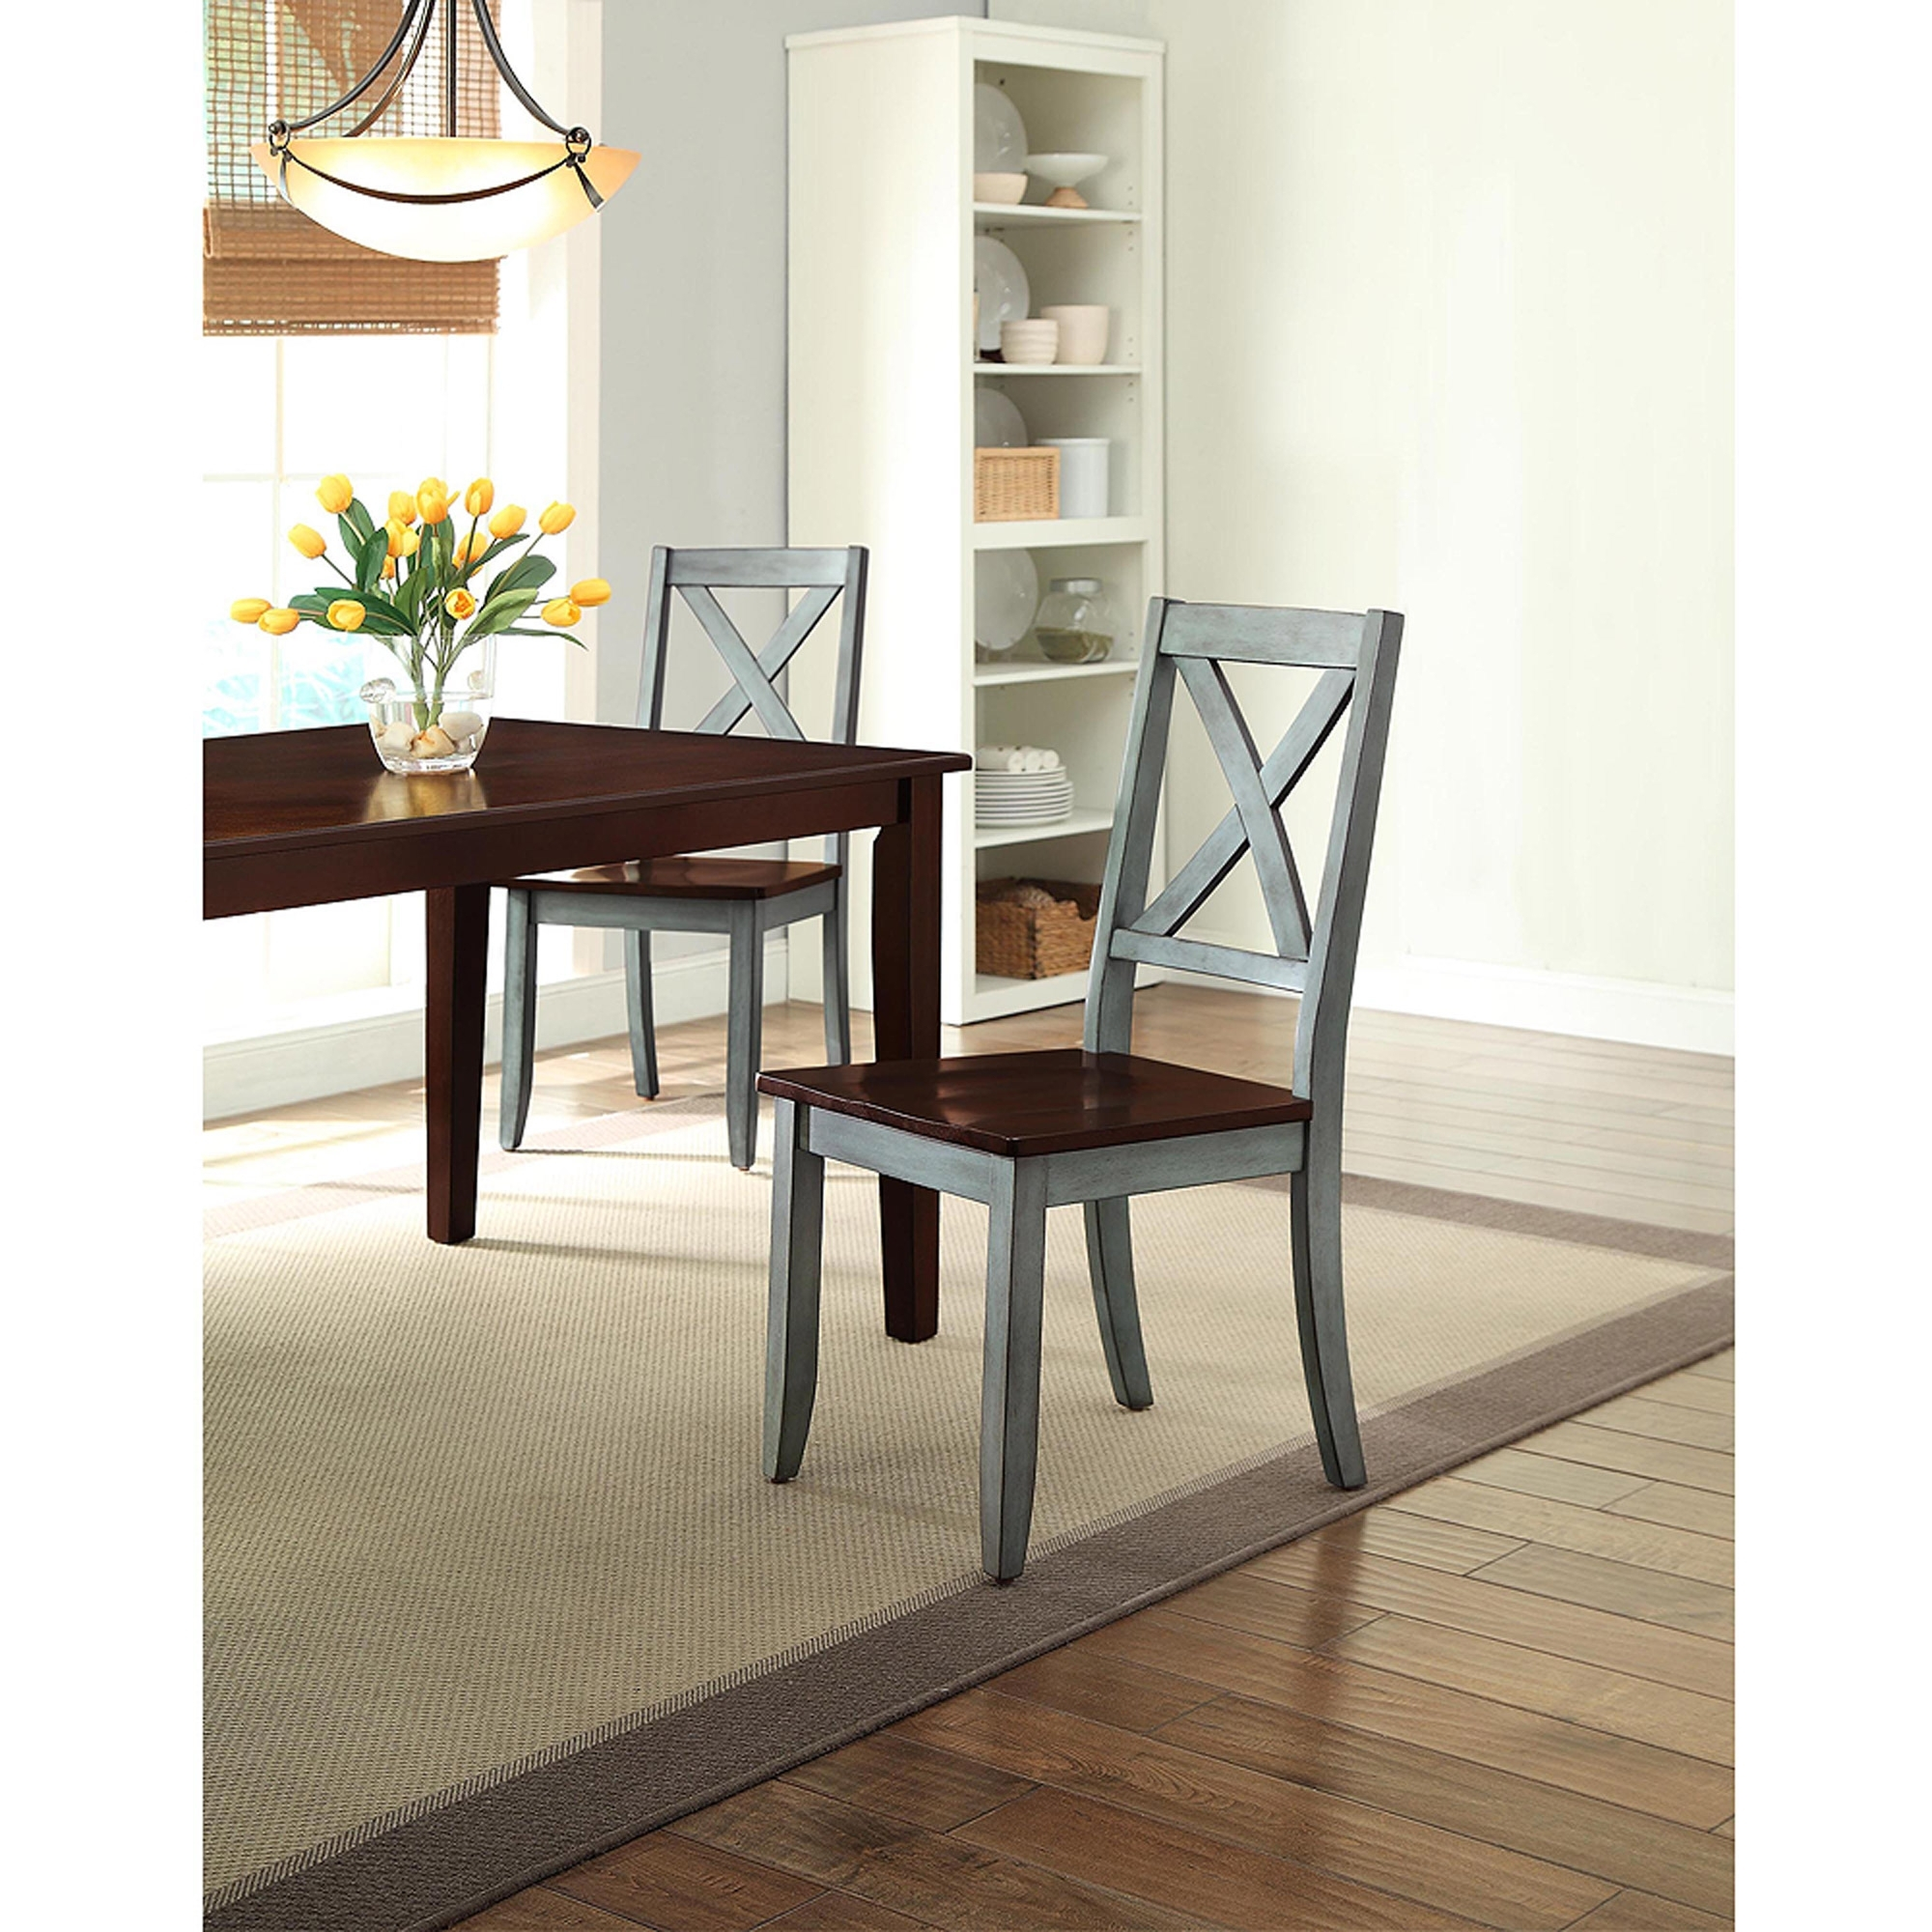 Blue Dining Tables Pertaining To Most Current Better Homes And Gardens Maddox 5 Piece Dining Set, Blue And Mocha (Gallery 9 of 25)